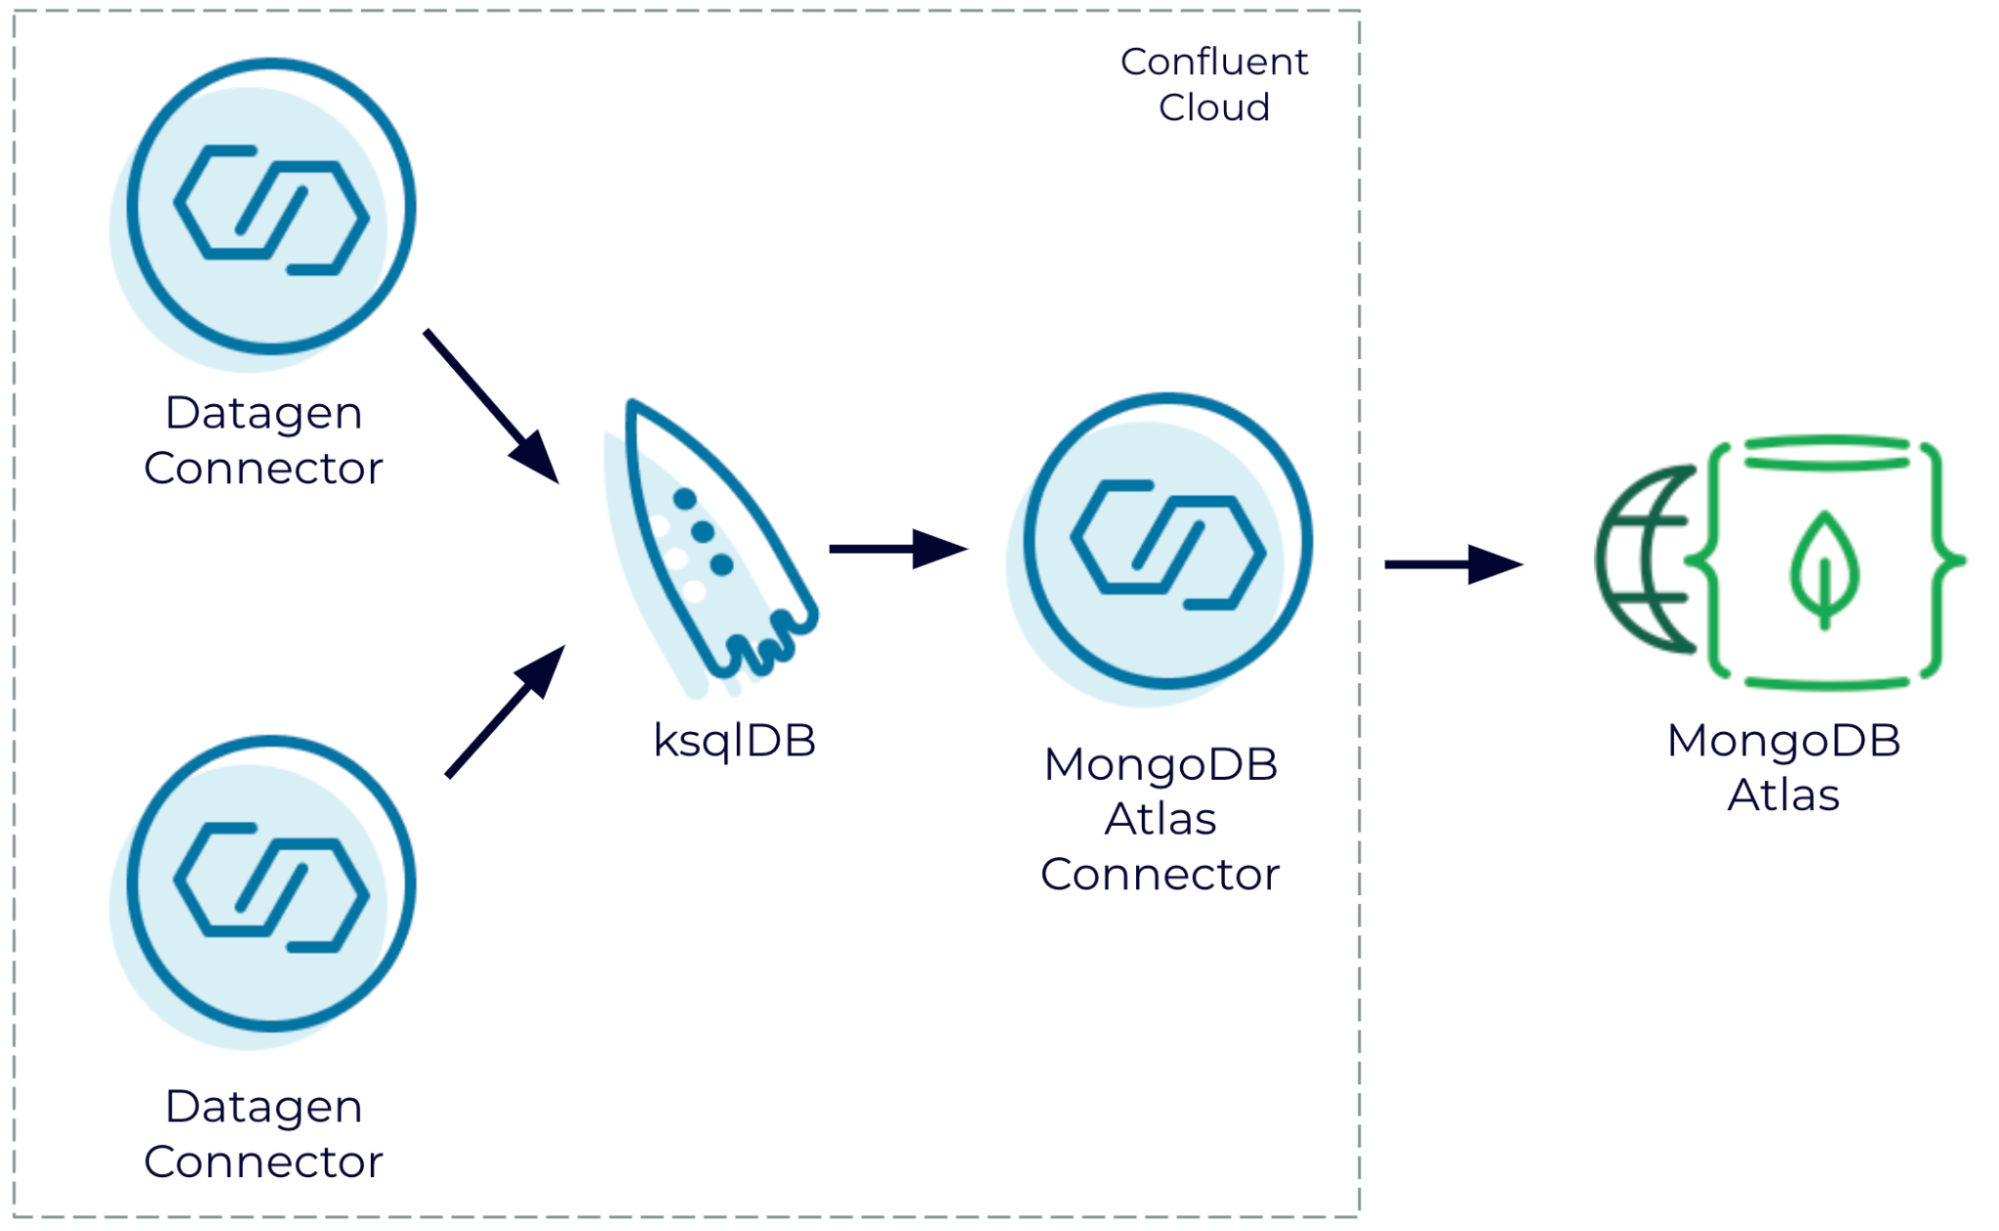 Join generated data streams in Confluent Cloud and write the results to MongoDB Atlas